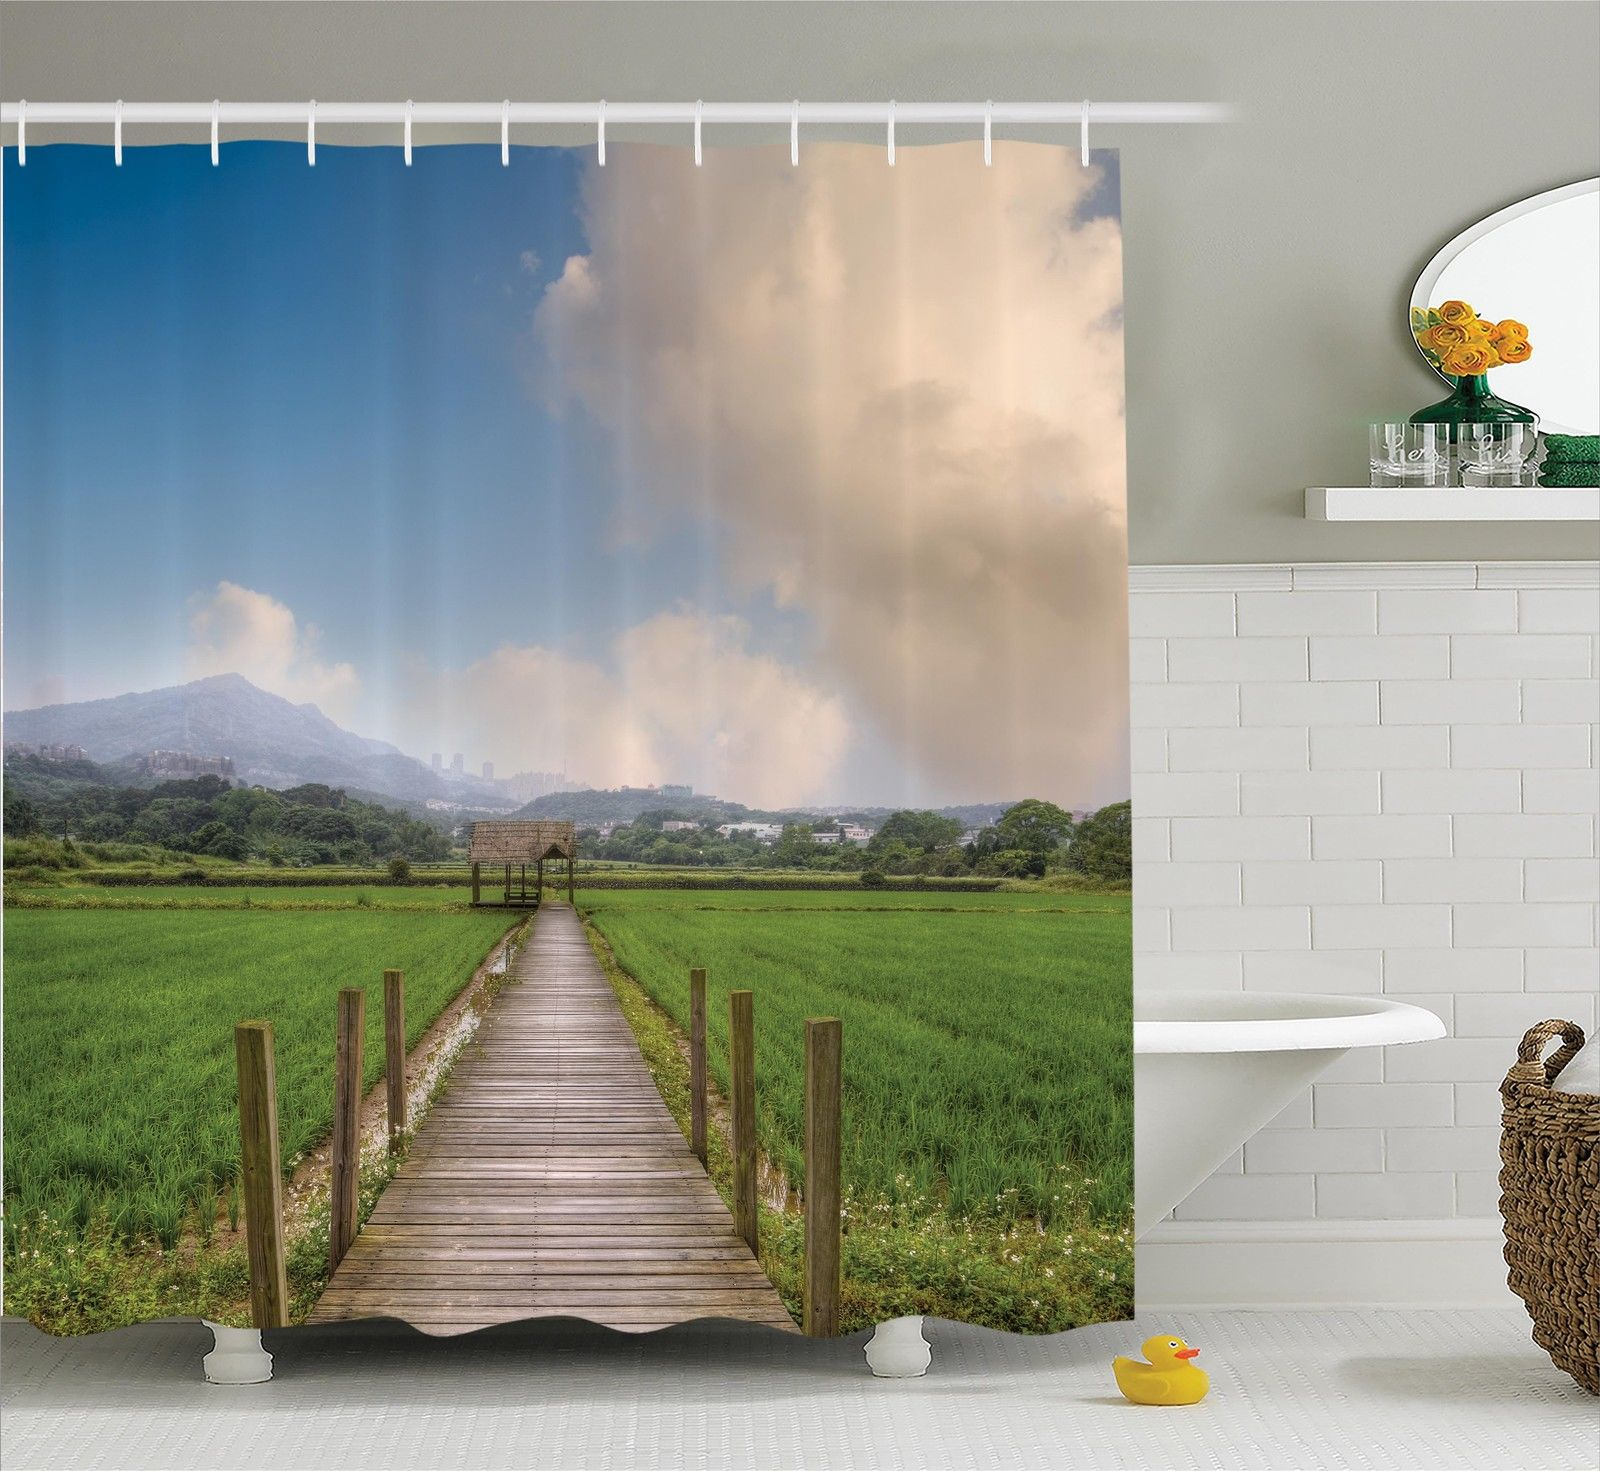 Farm House Decor Shower Curtain Set, Rural Scenery With Wooden Path And House Under Cloudy Sky Mountain Serenity In Nature, Bathroom Accessories, 69W X 70L Inches, By Ambesonne